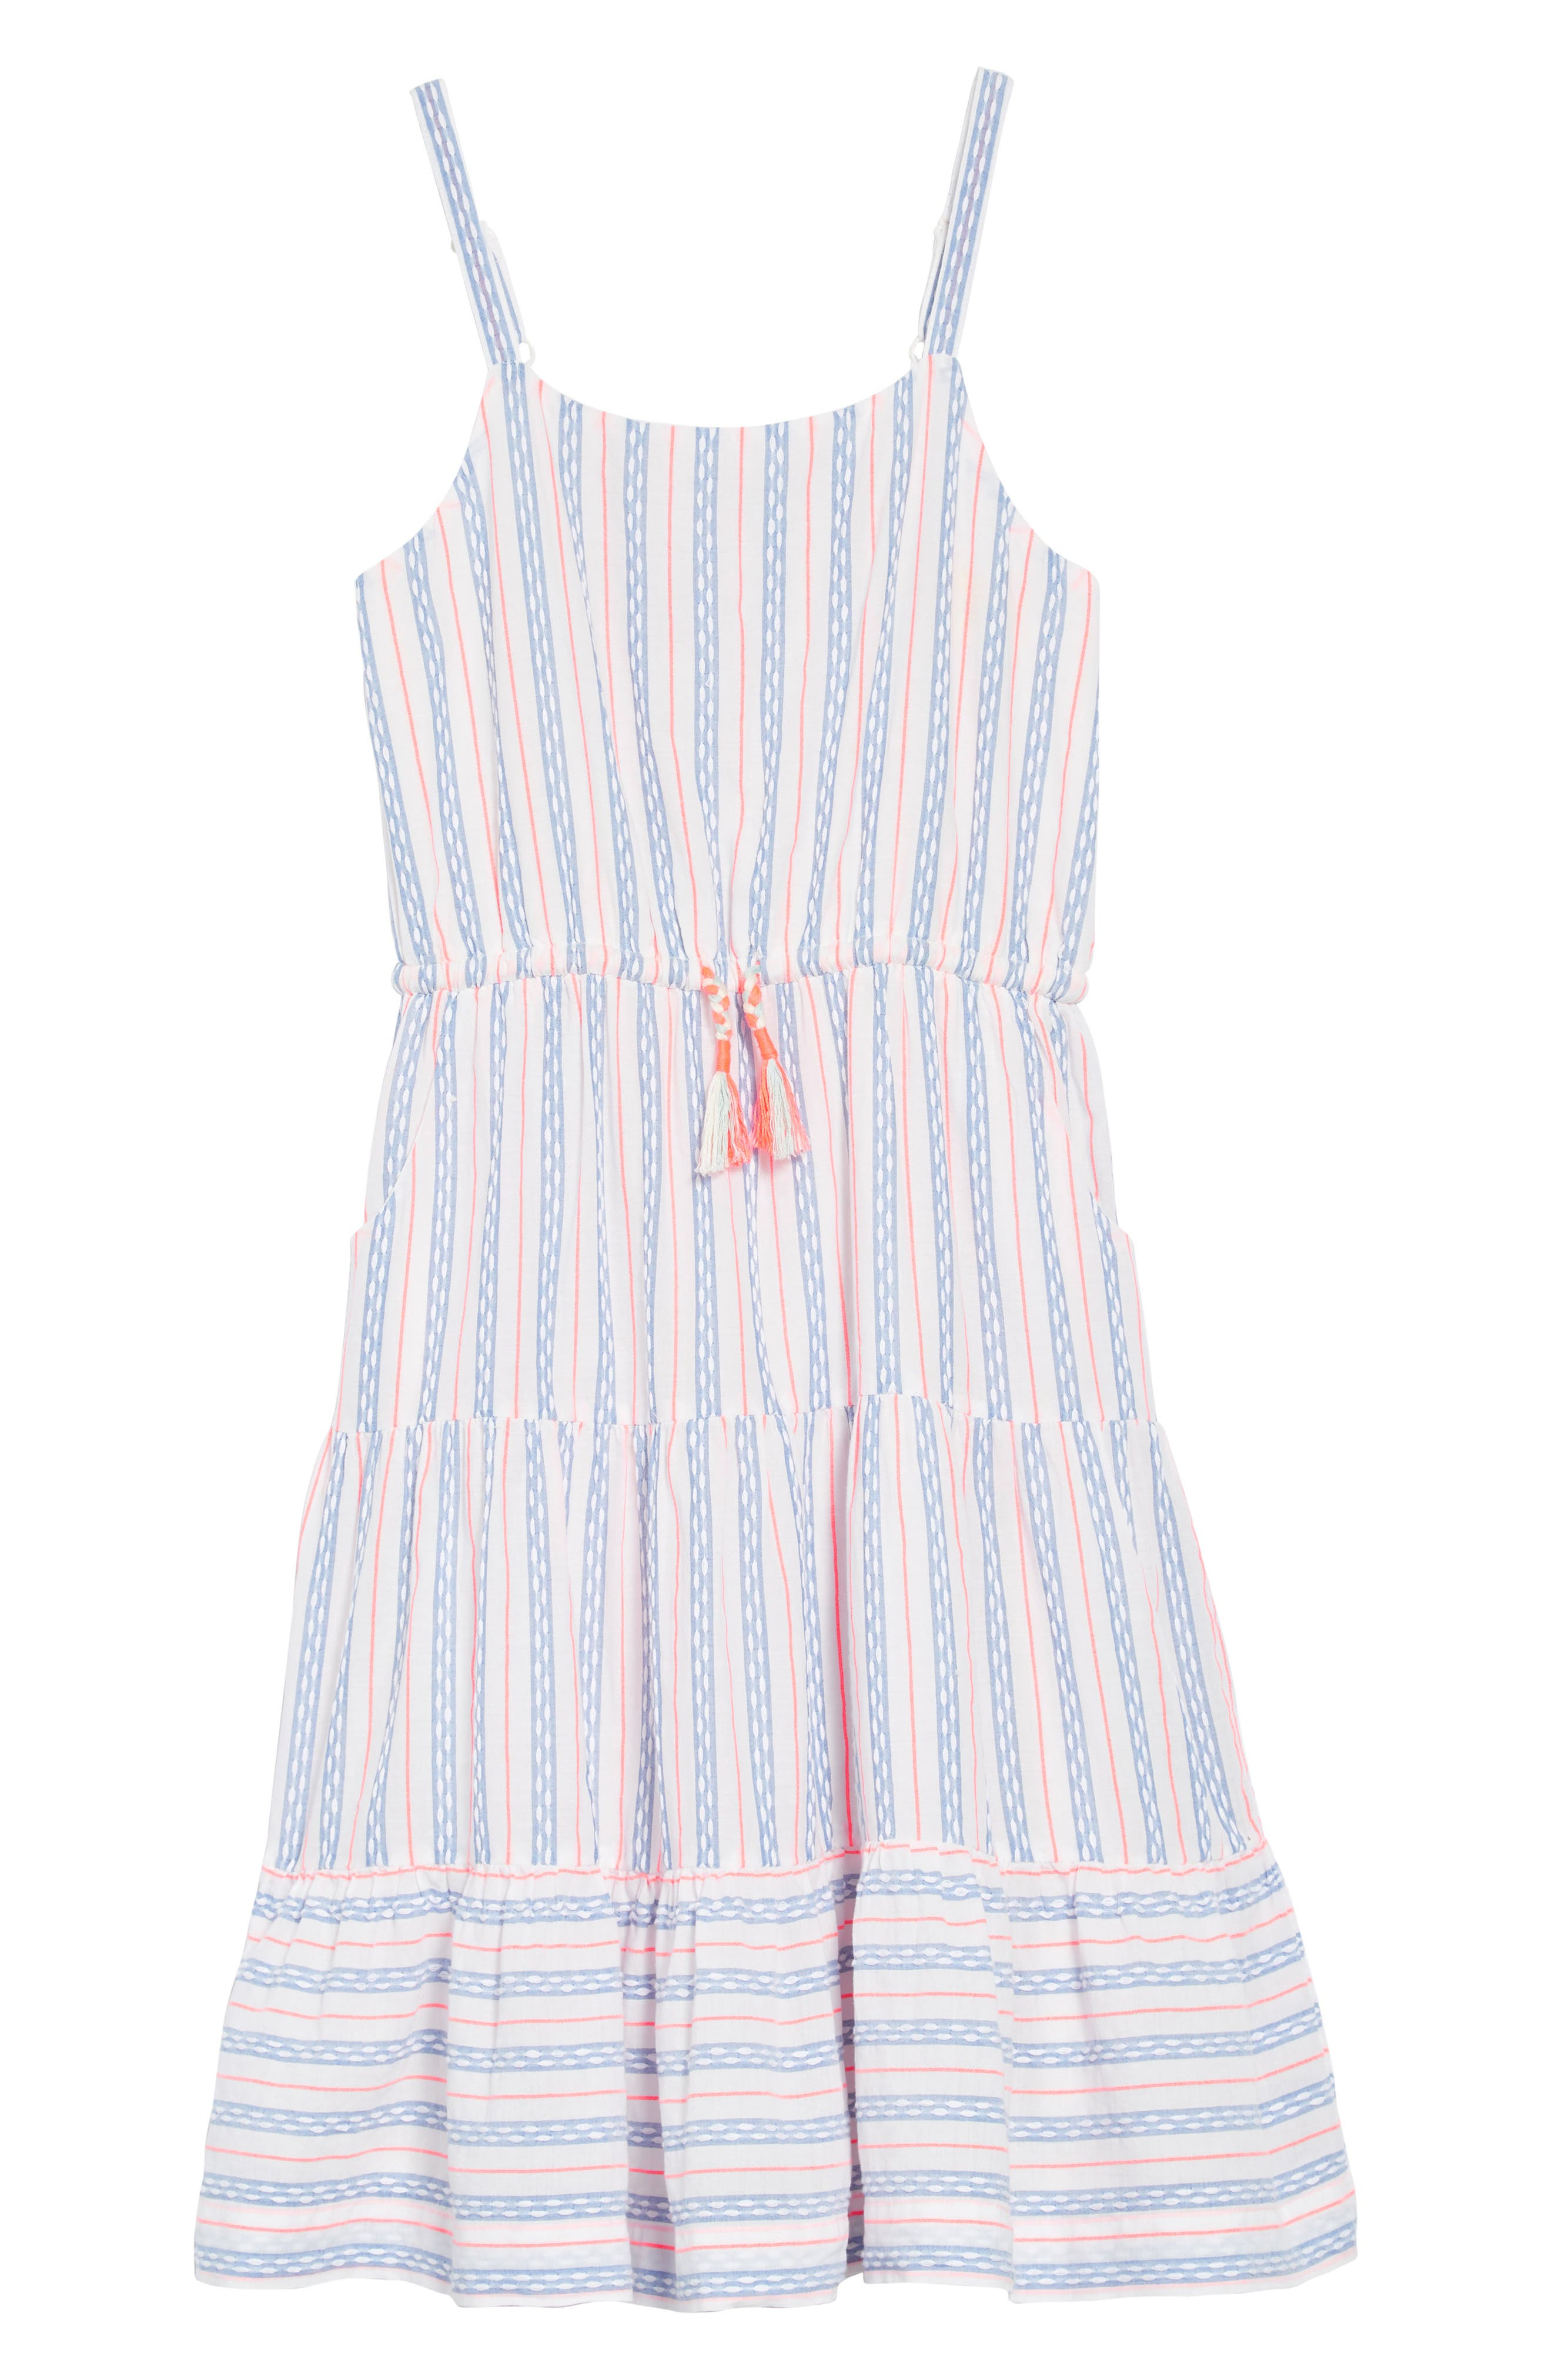 Tiered Strappy Woven Dress,                         Main,                         color, Textured Blue And White Stripe